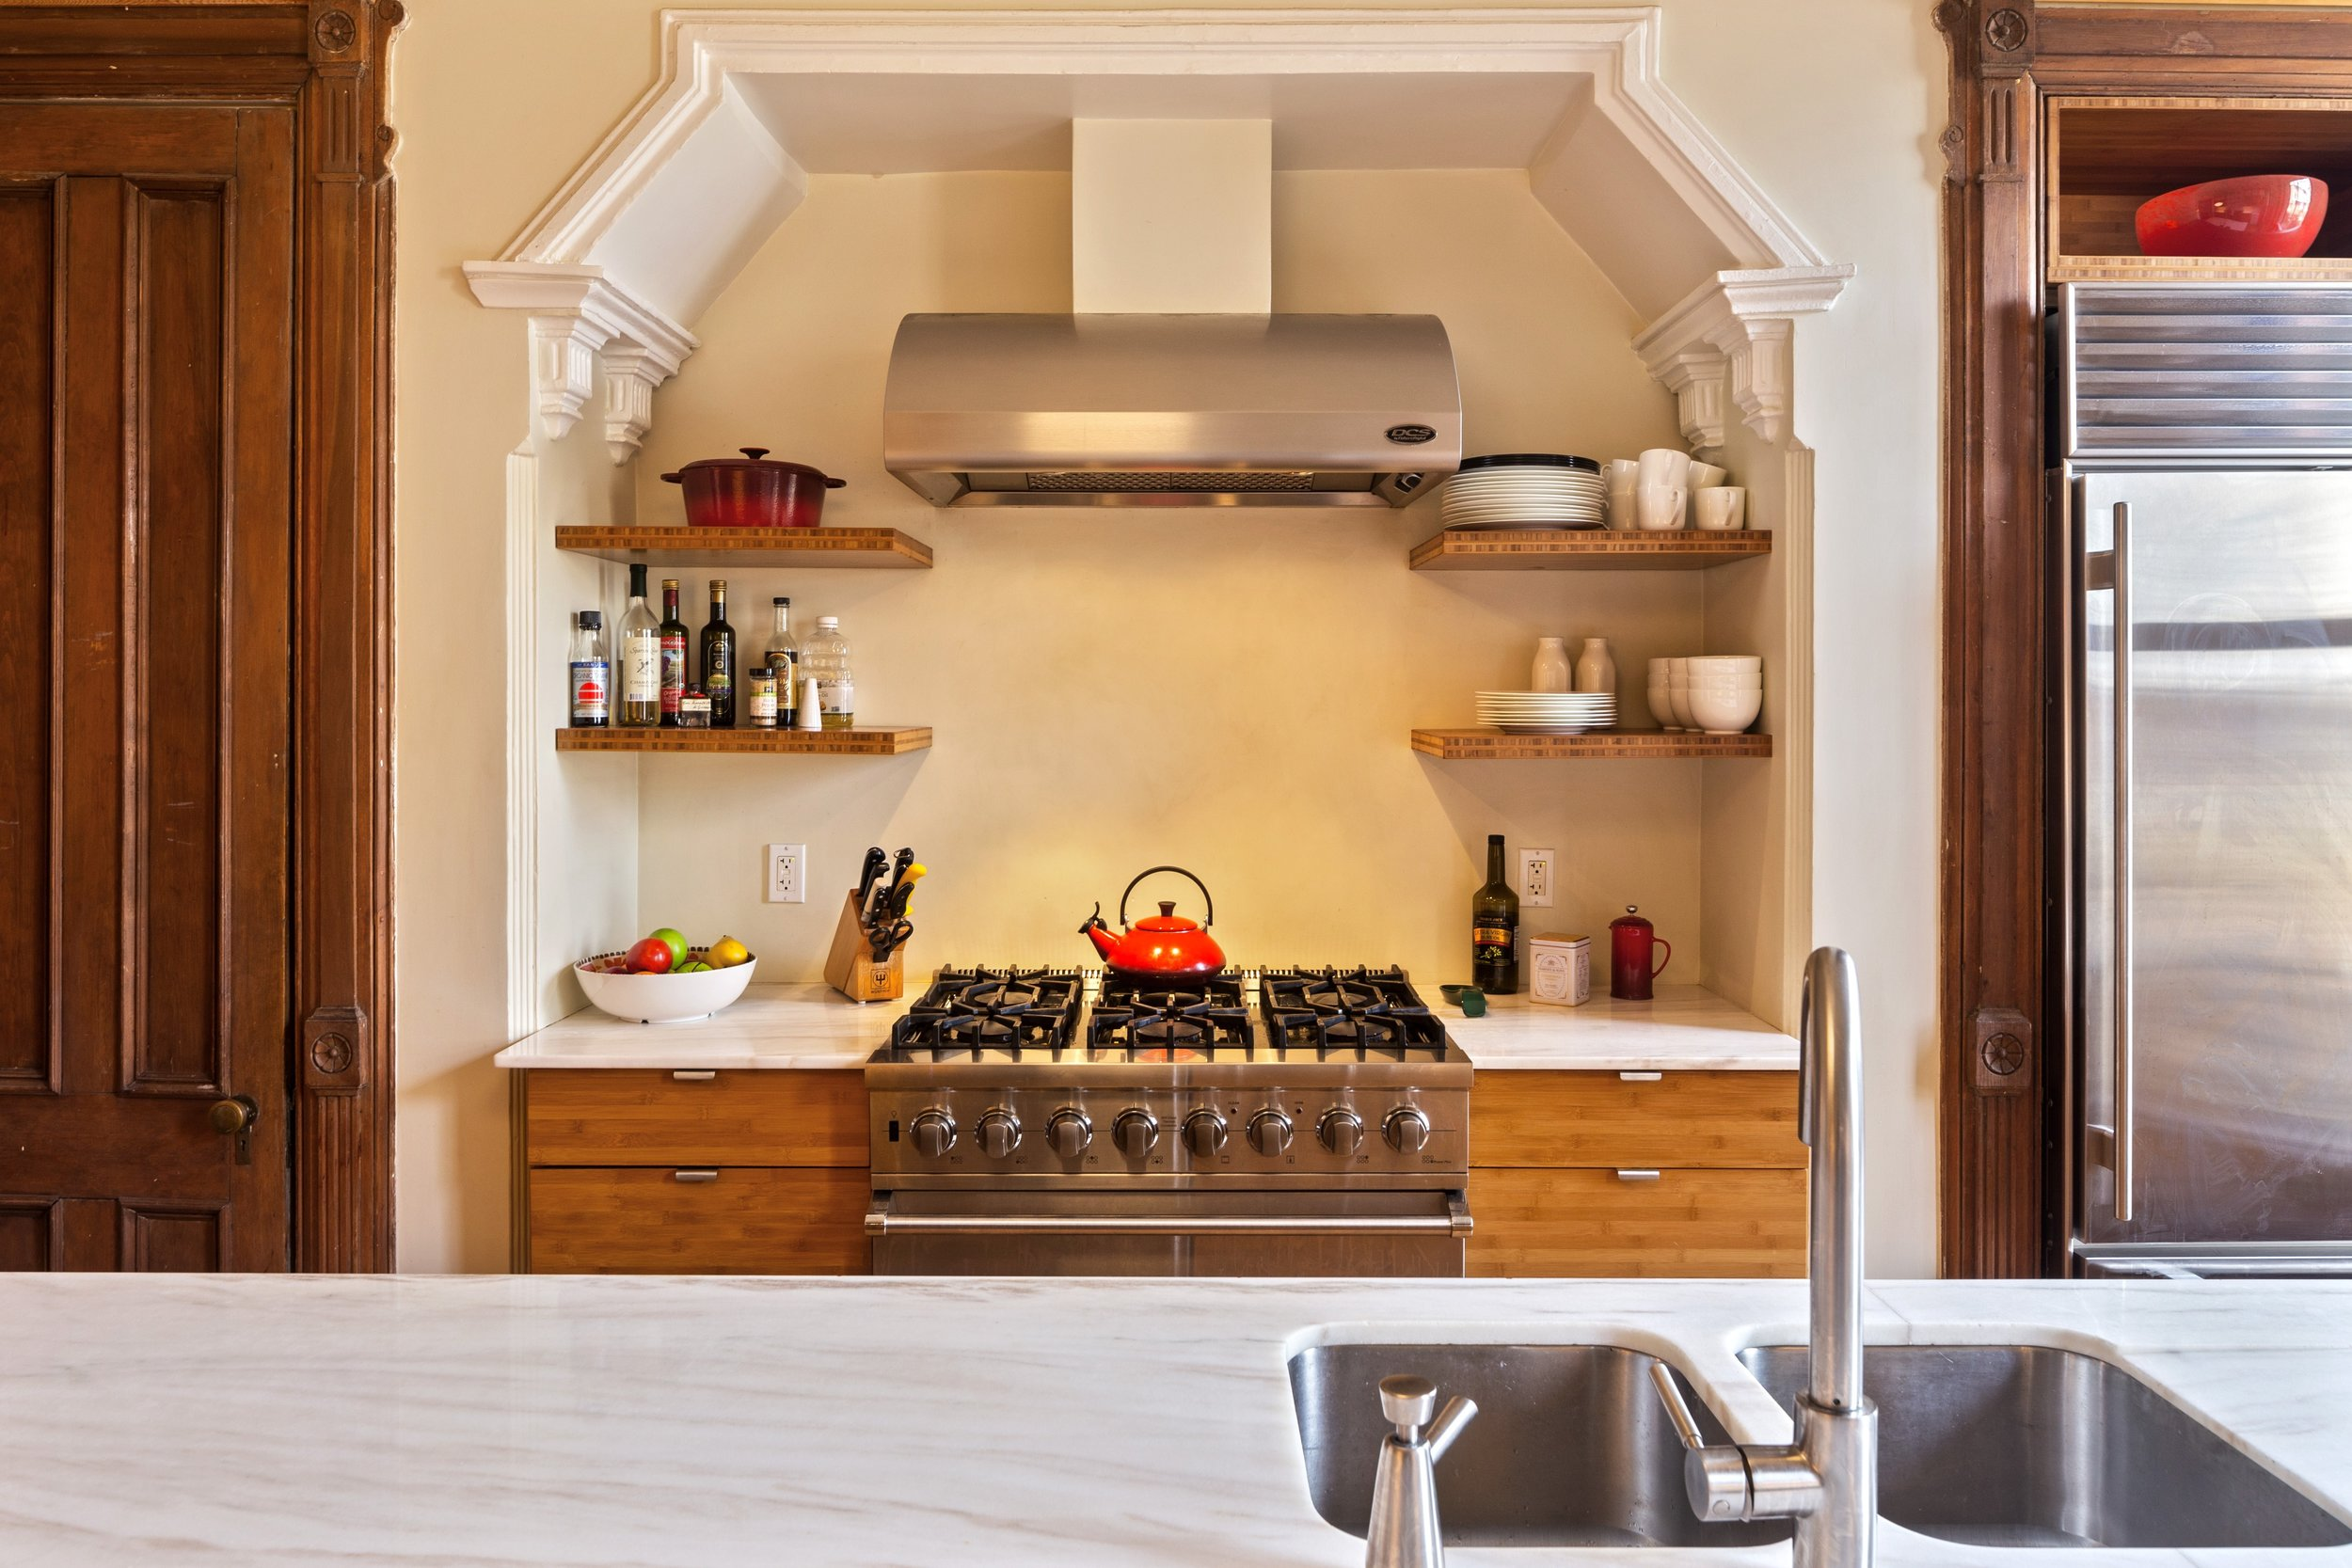 07_151WilloughbyAve_177002_Kitchen_HiRes.jpg